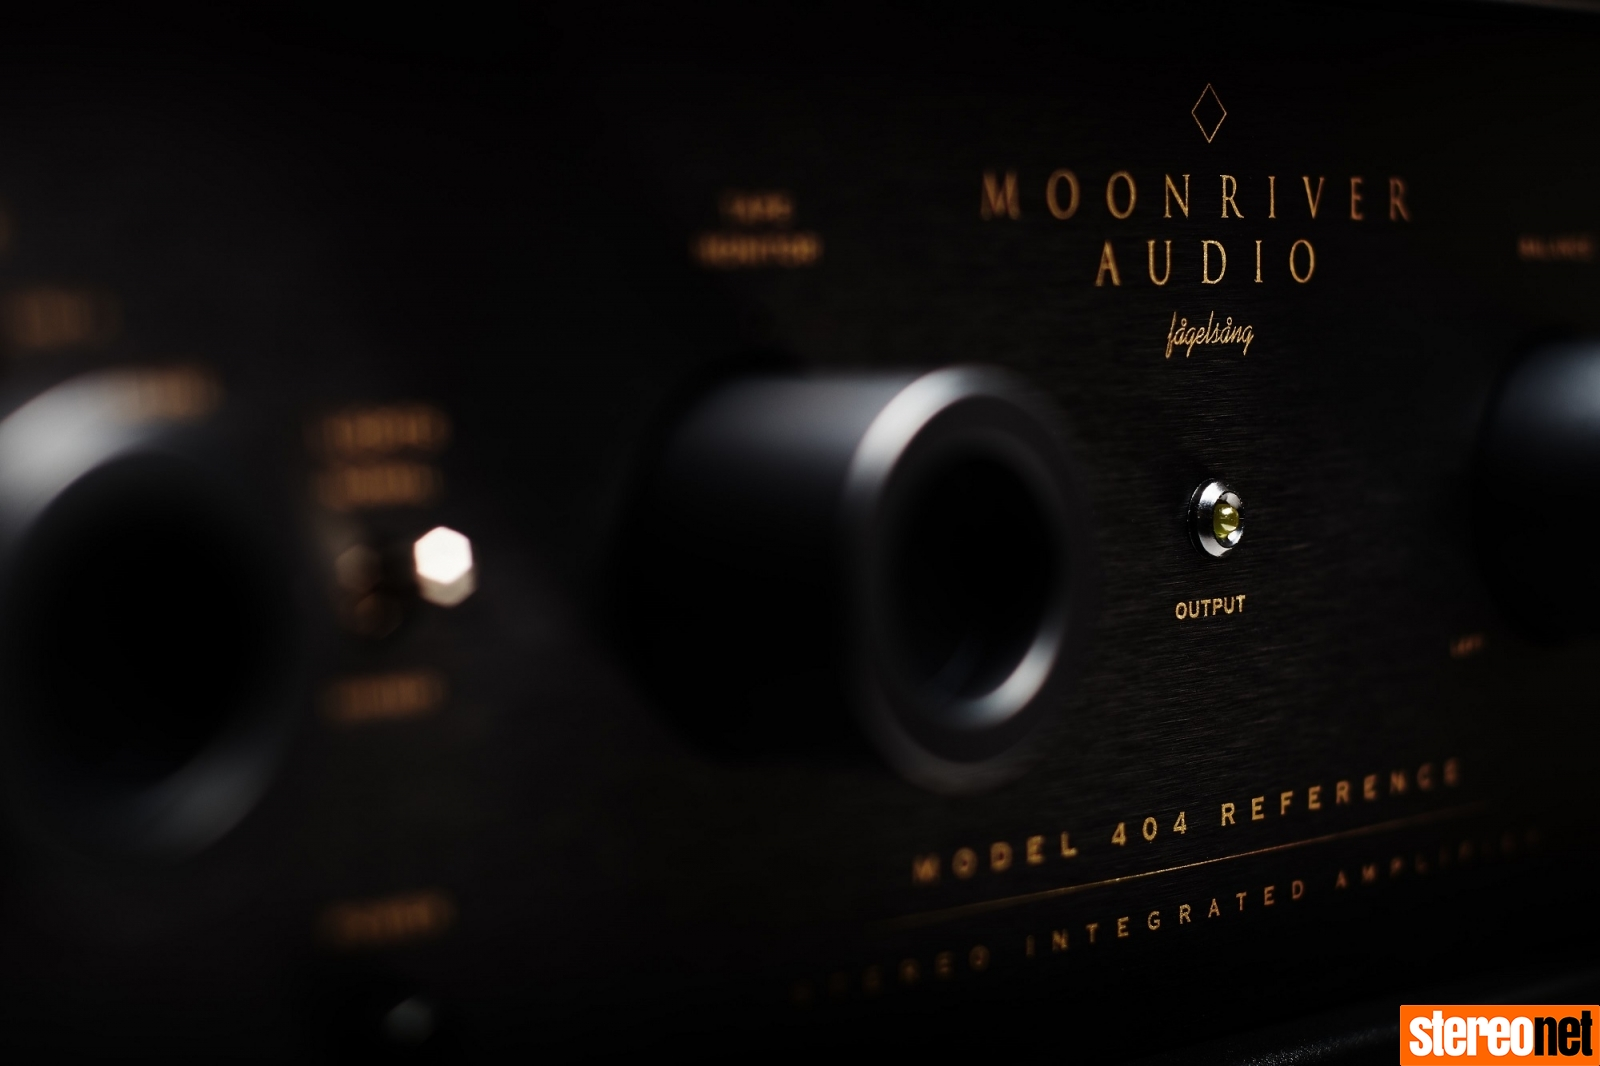 Moonriver 404 Reference Review